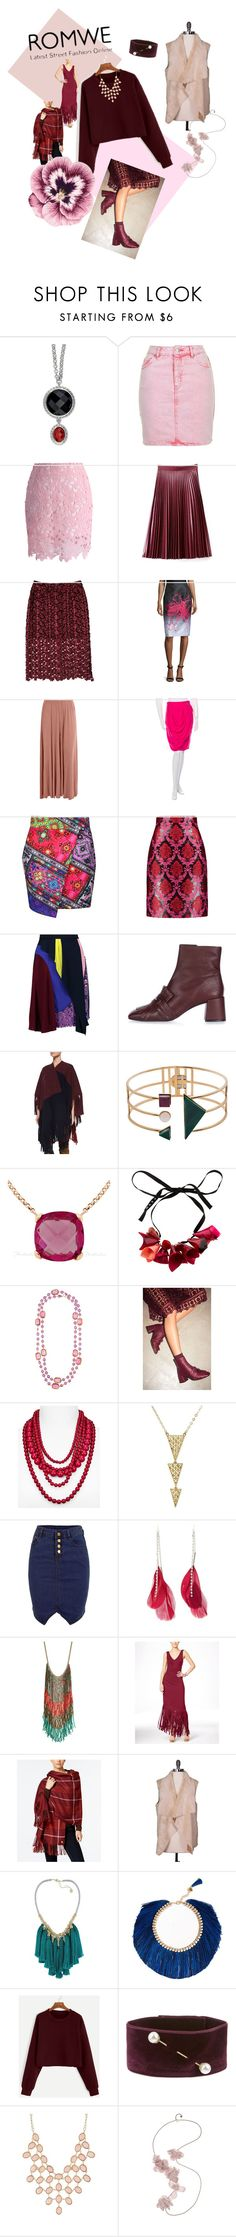 """""""burgundy base"""" by tess-jr ❤ liked on Polyvore featuring Topshop, Chicwish, WithChic, Carolina Herrera, Boohoo, Chanel, Jaded, Mary Katrantzou, Peter Pilotto and Burberry"""